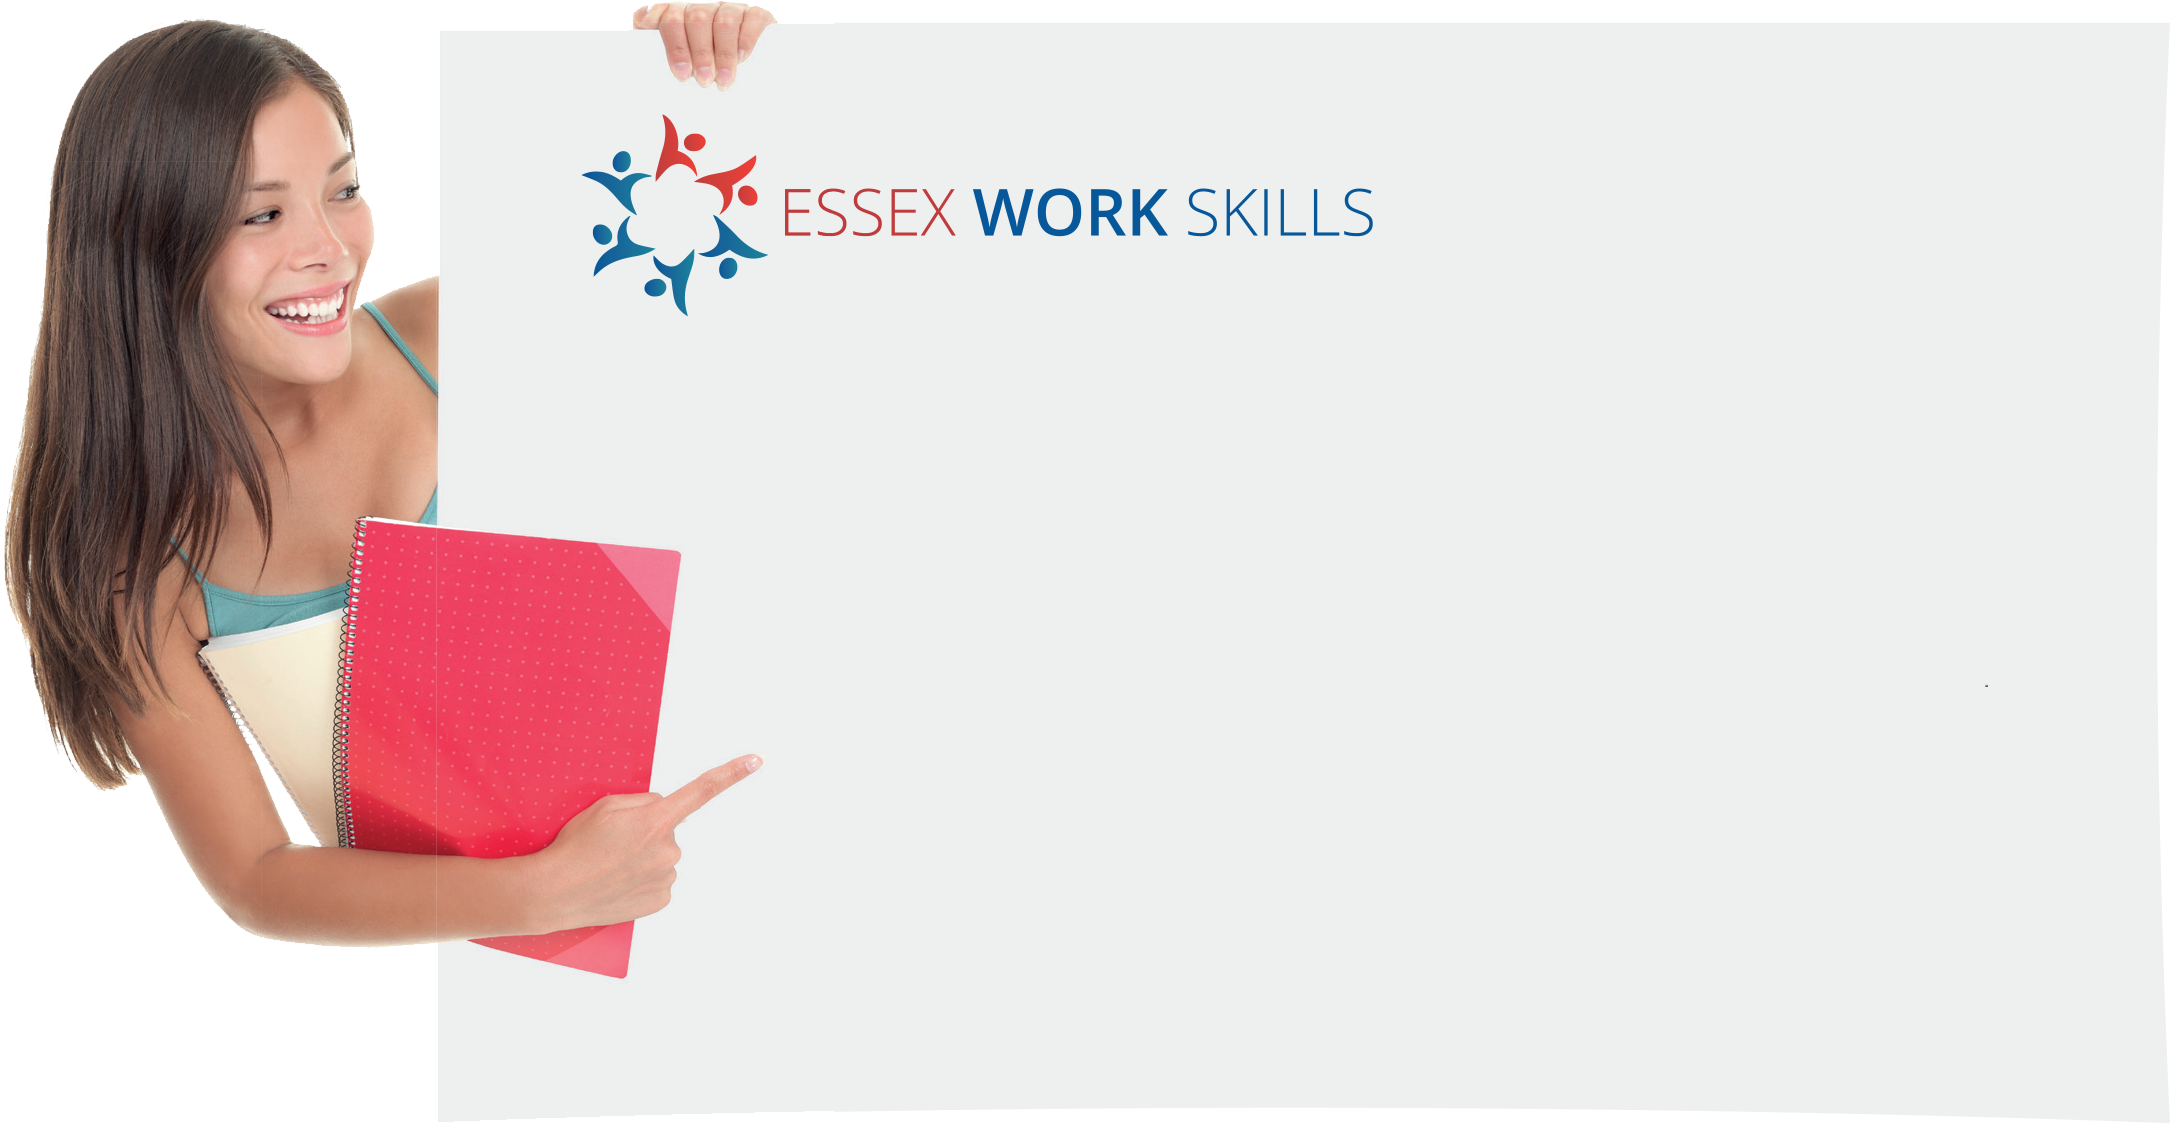 essex works skills preparing young people for work preparing young people for work interview skills